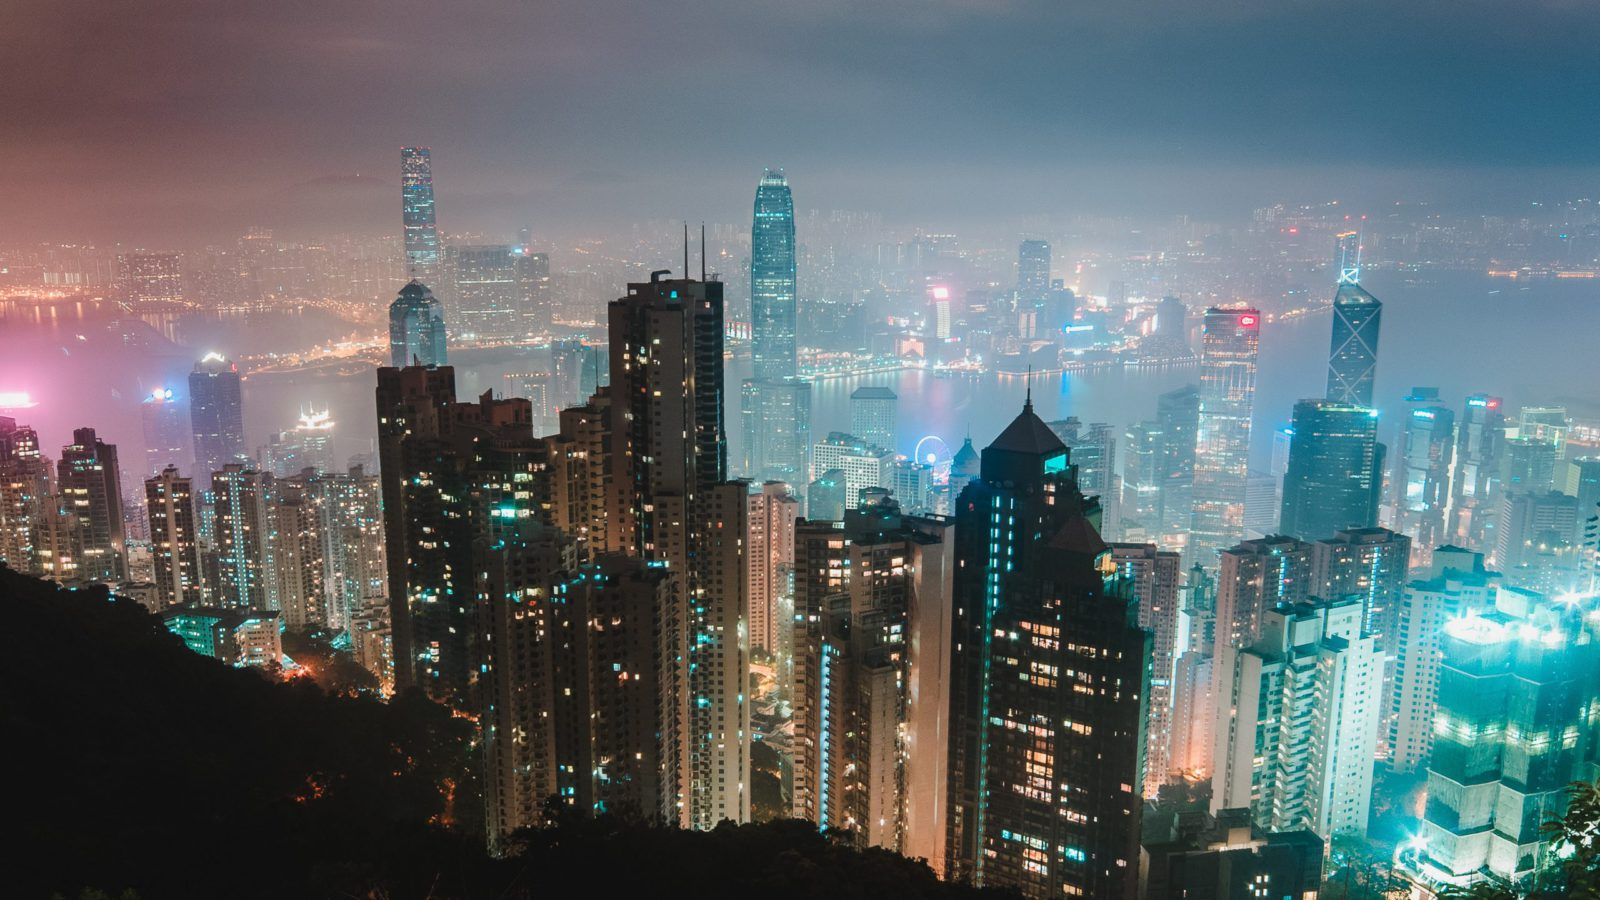 Flight Deal Round Trip From Chicago Area to Hong Kong #chicago #hongkong #2weeks